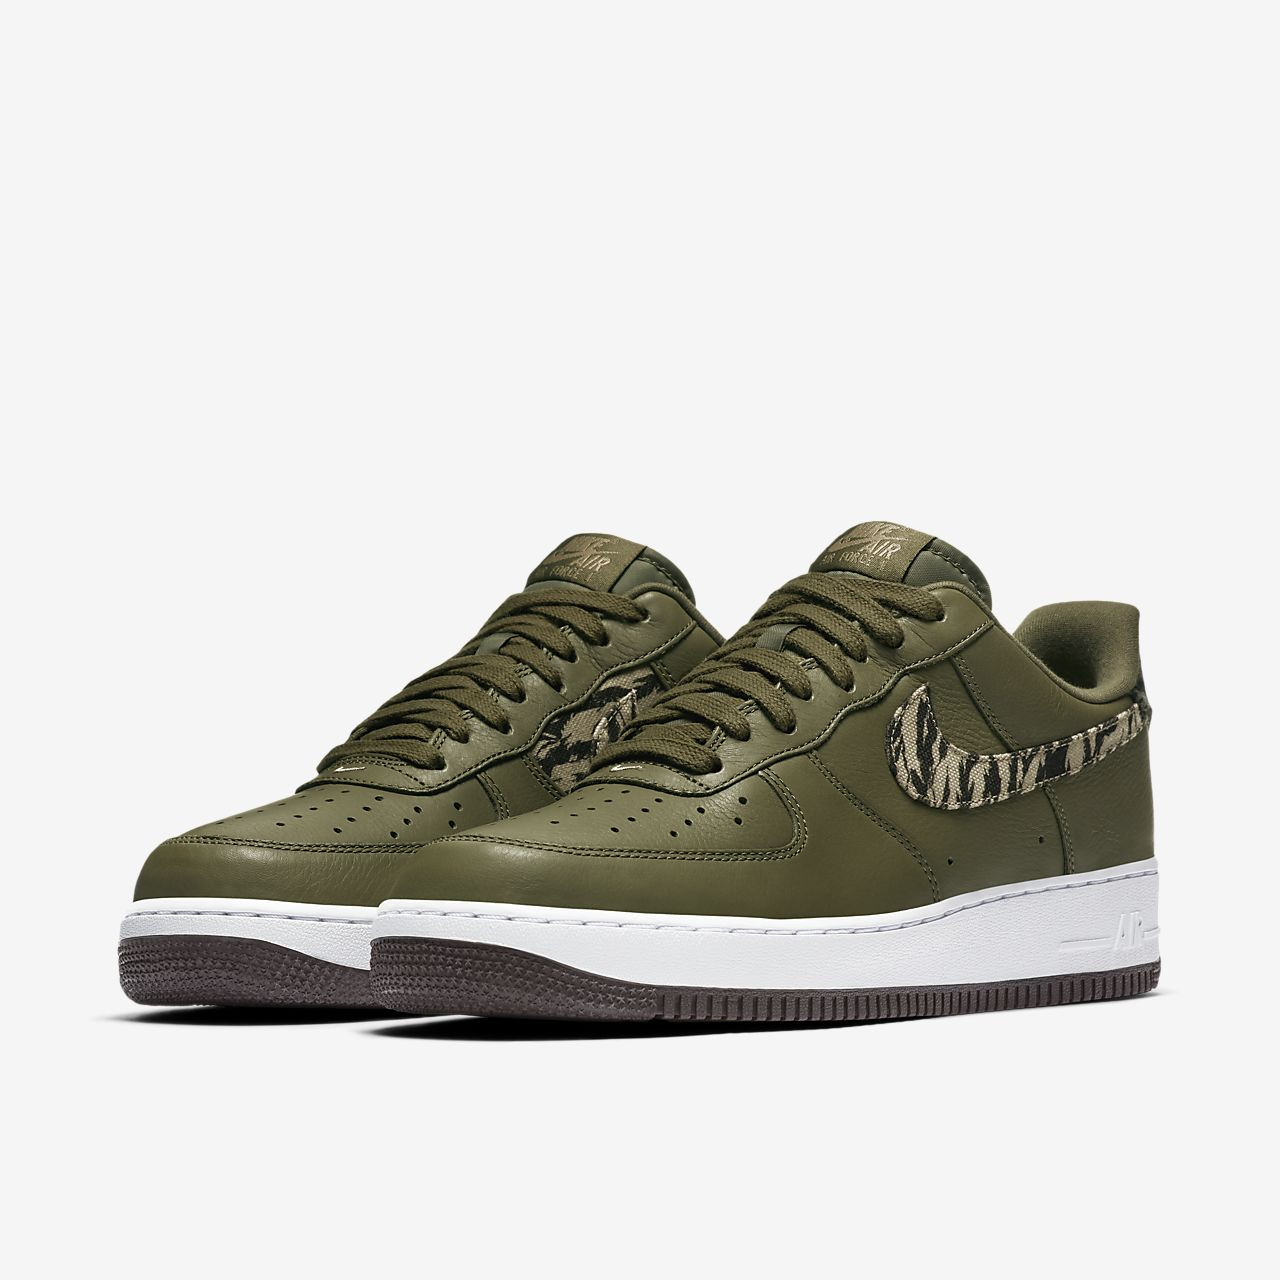 nike air force 1 velvet brown nz